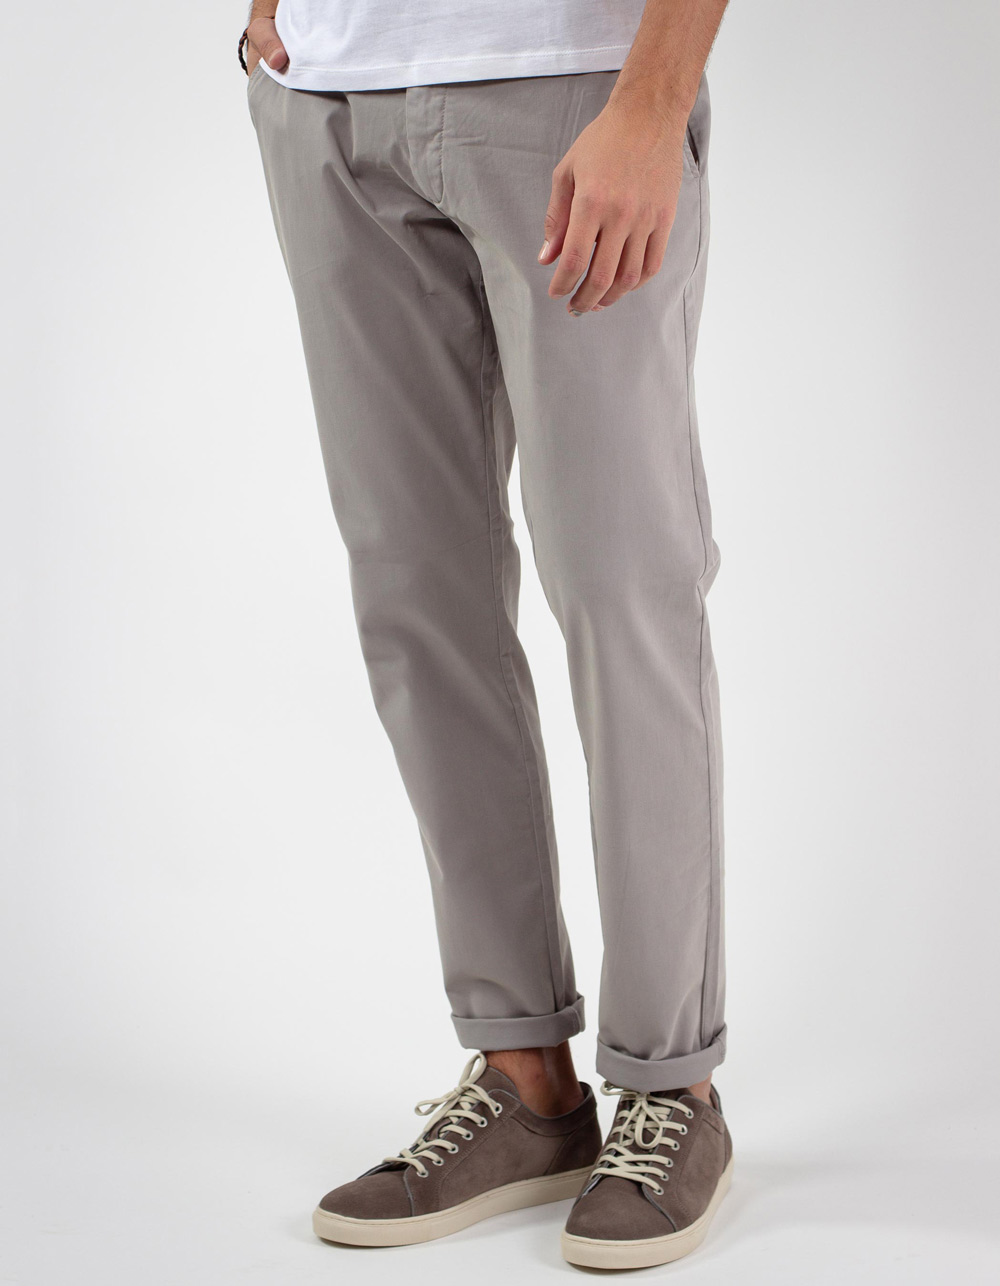 Light grey chinos trousers